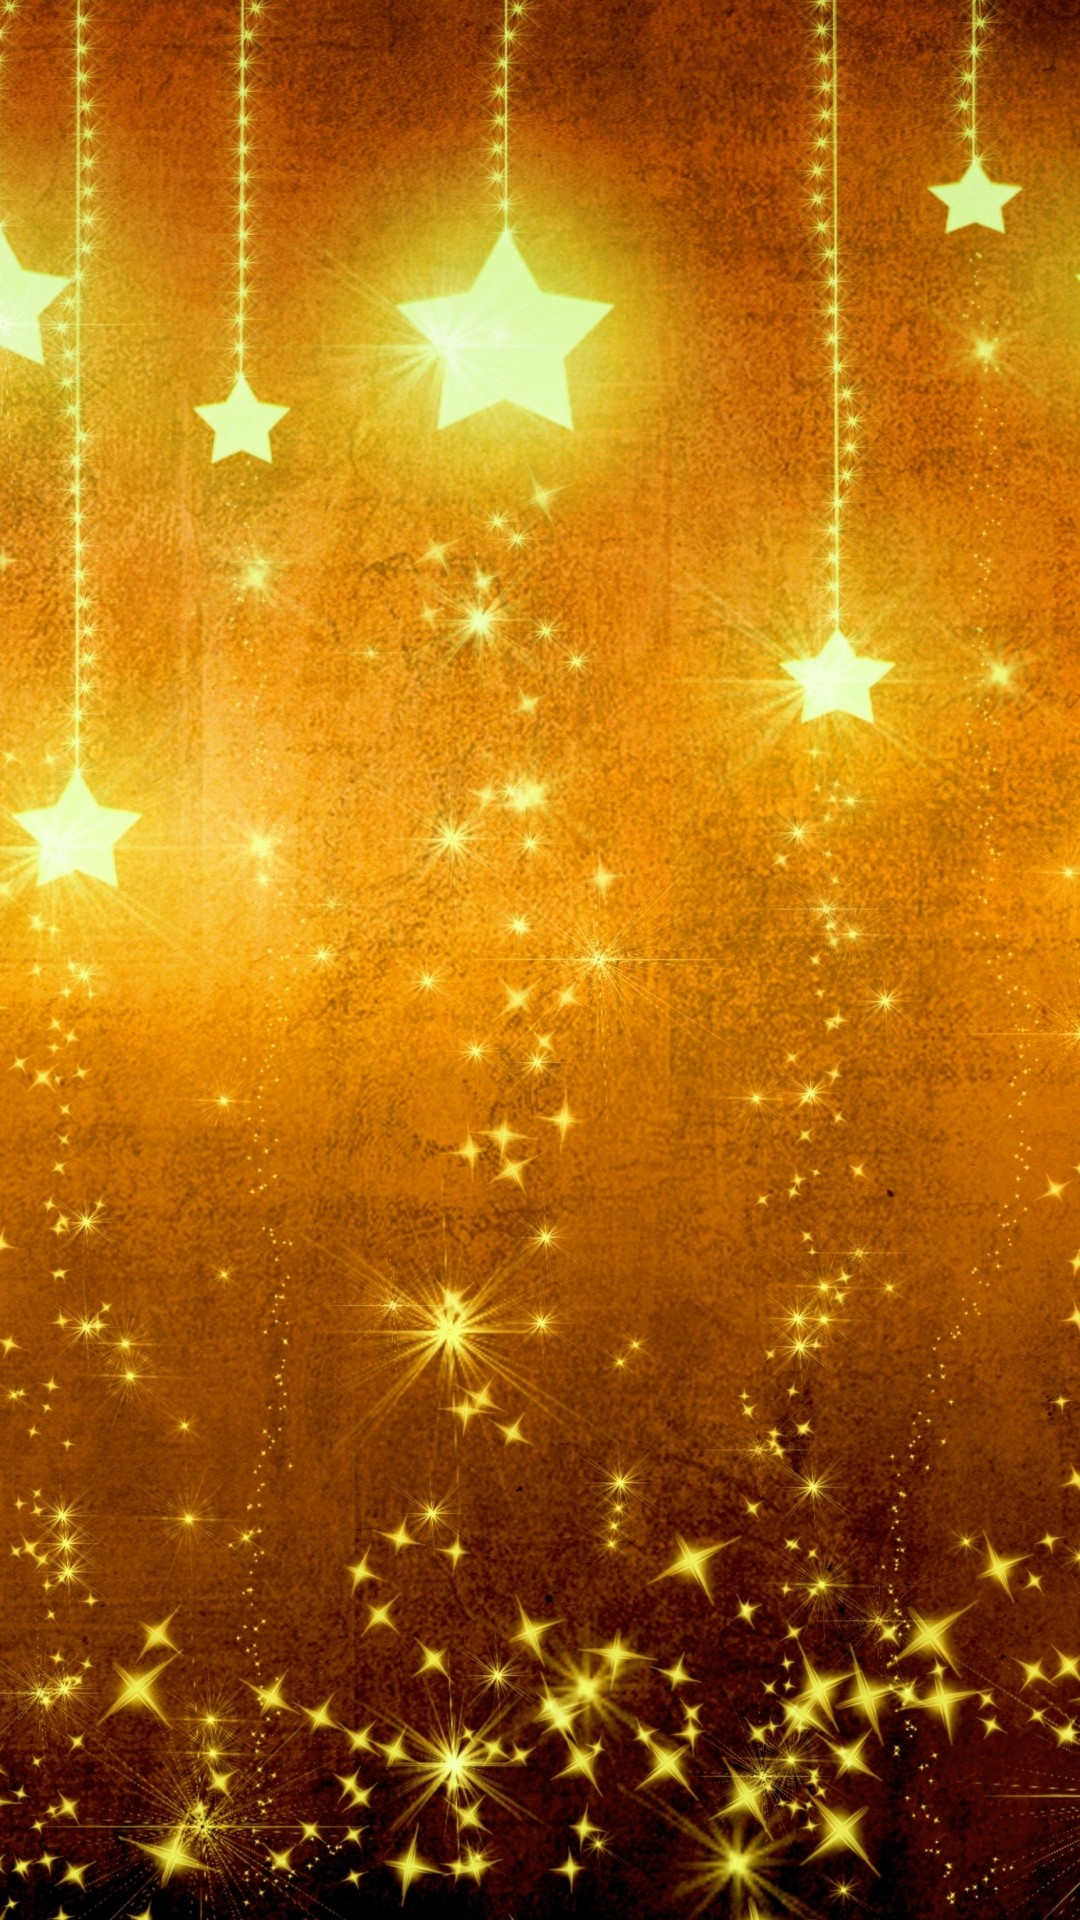 1080x1920 Star Gold Holiday Background Brown Yellow Light Texture iPhone 6 wallpaper